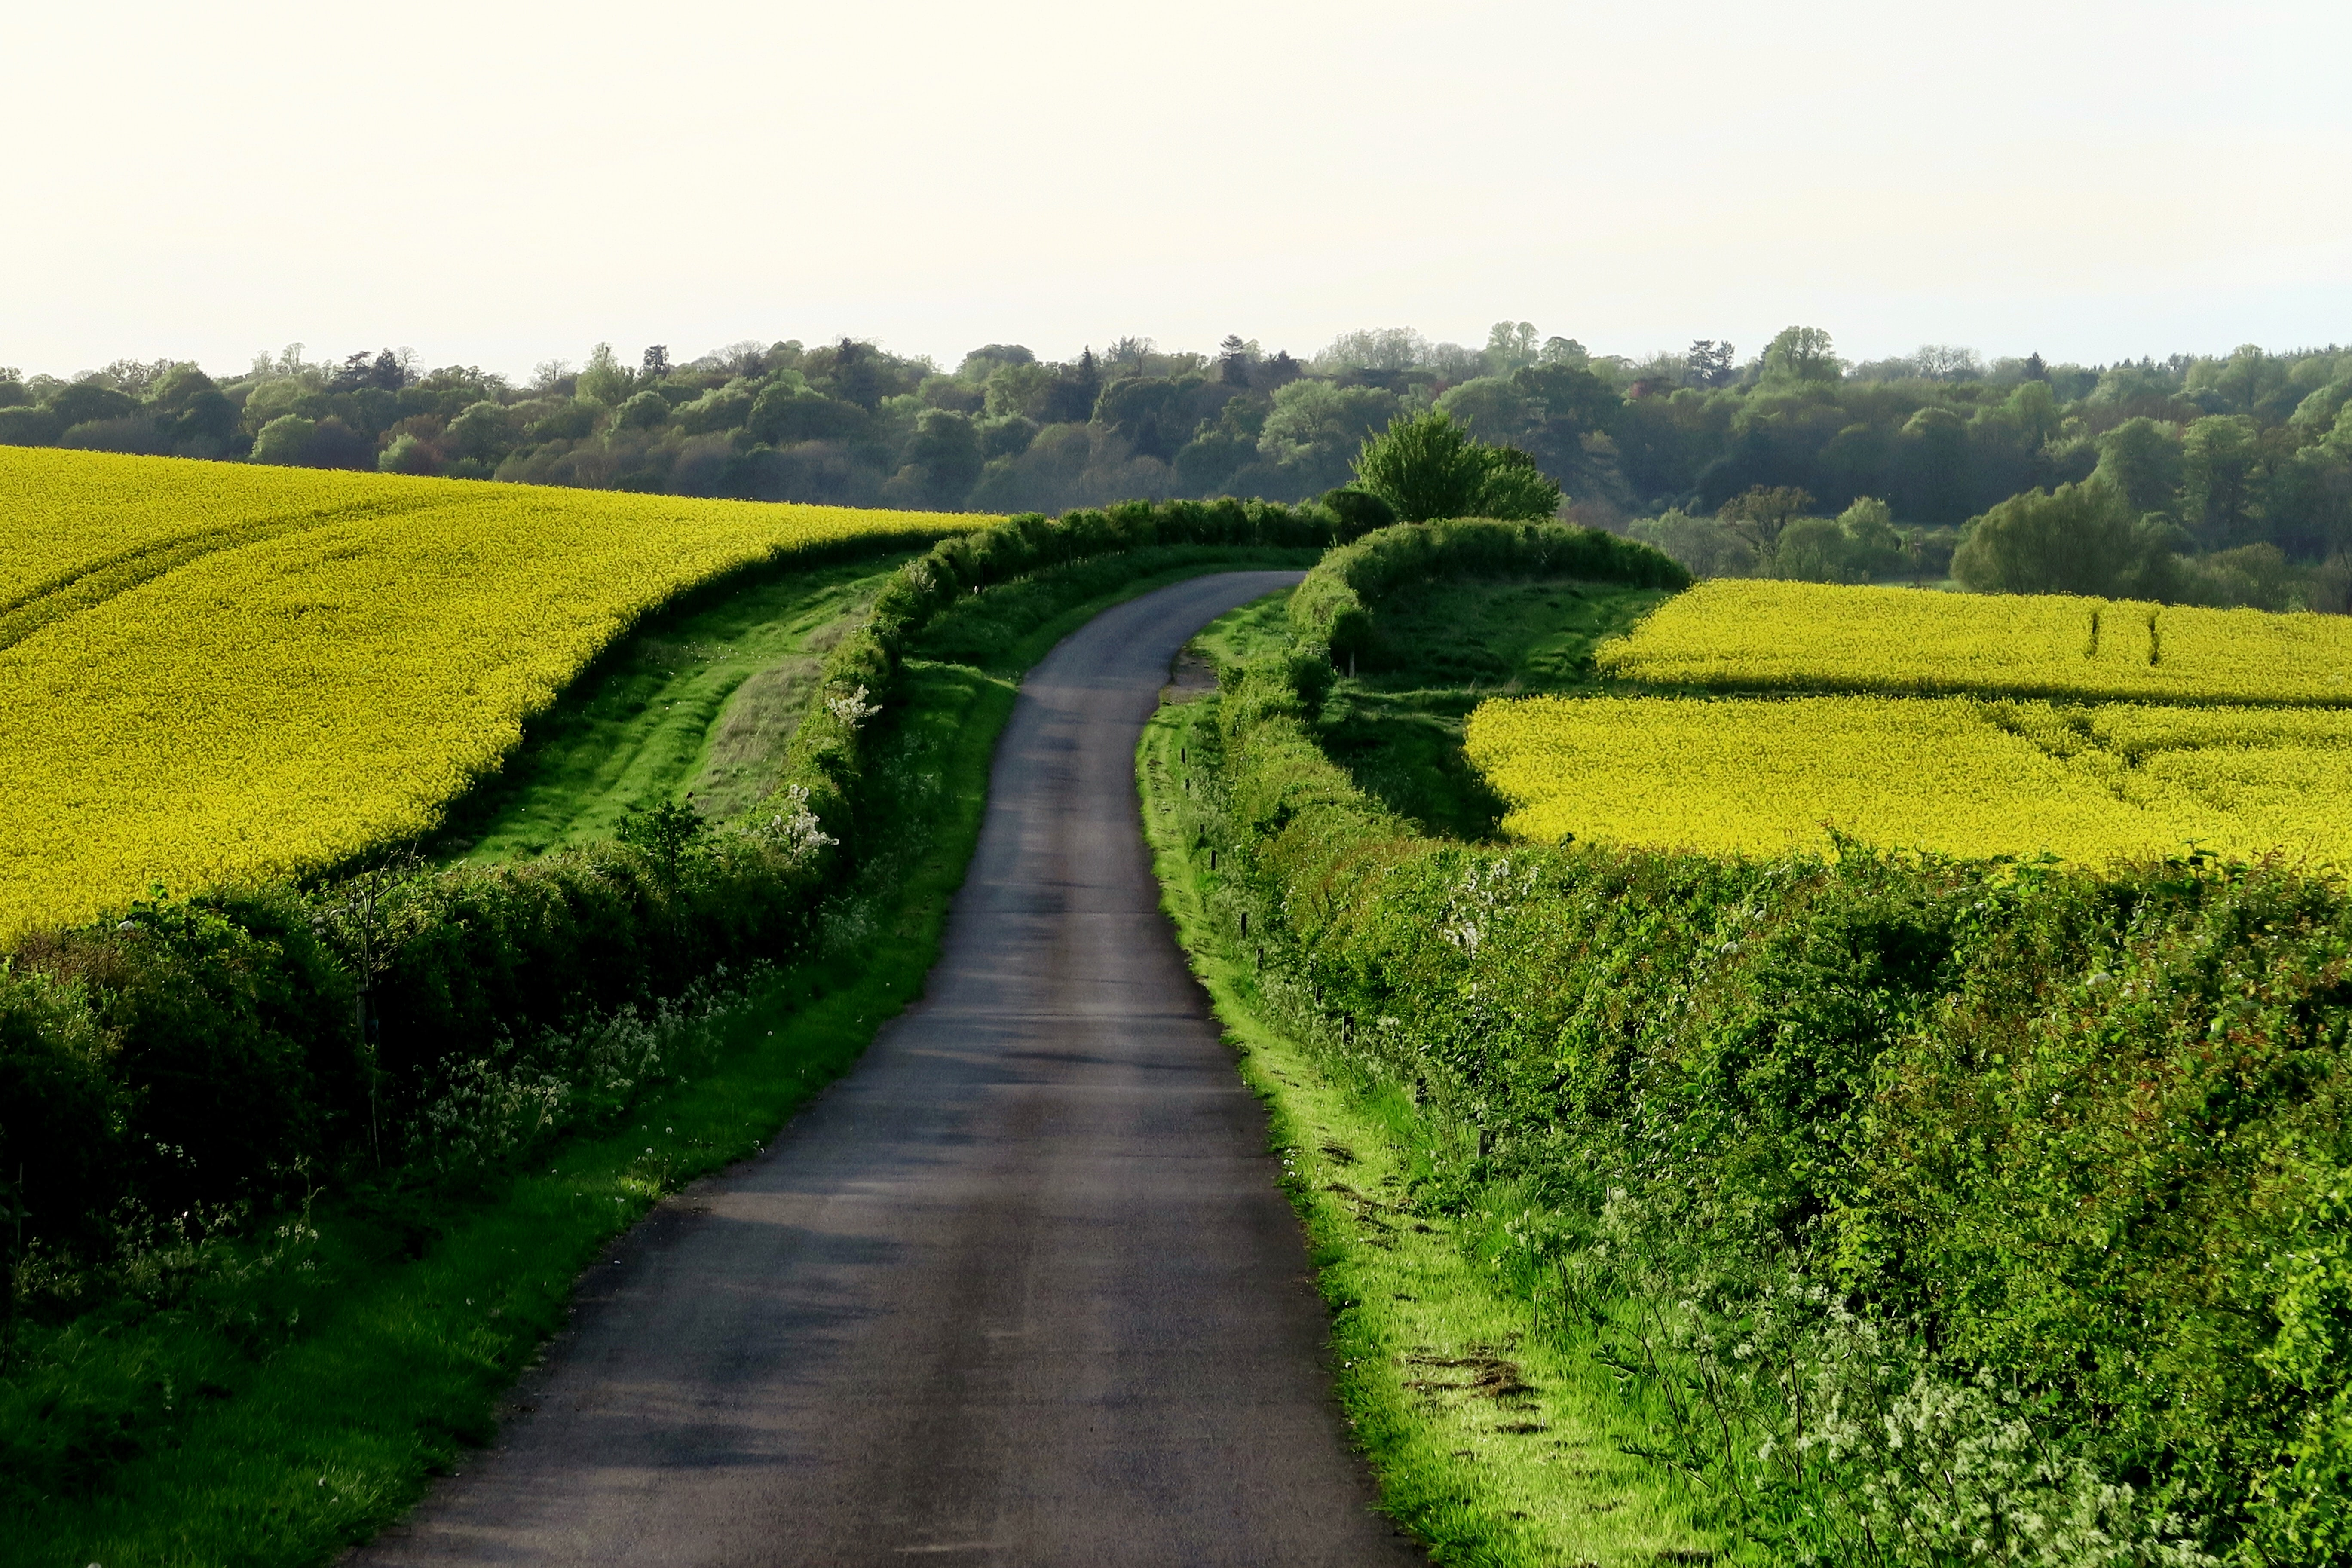 Country road leads through a path of lush grassy fields